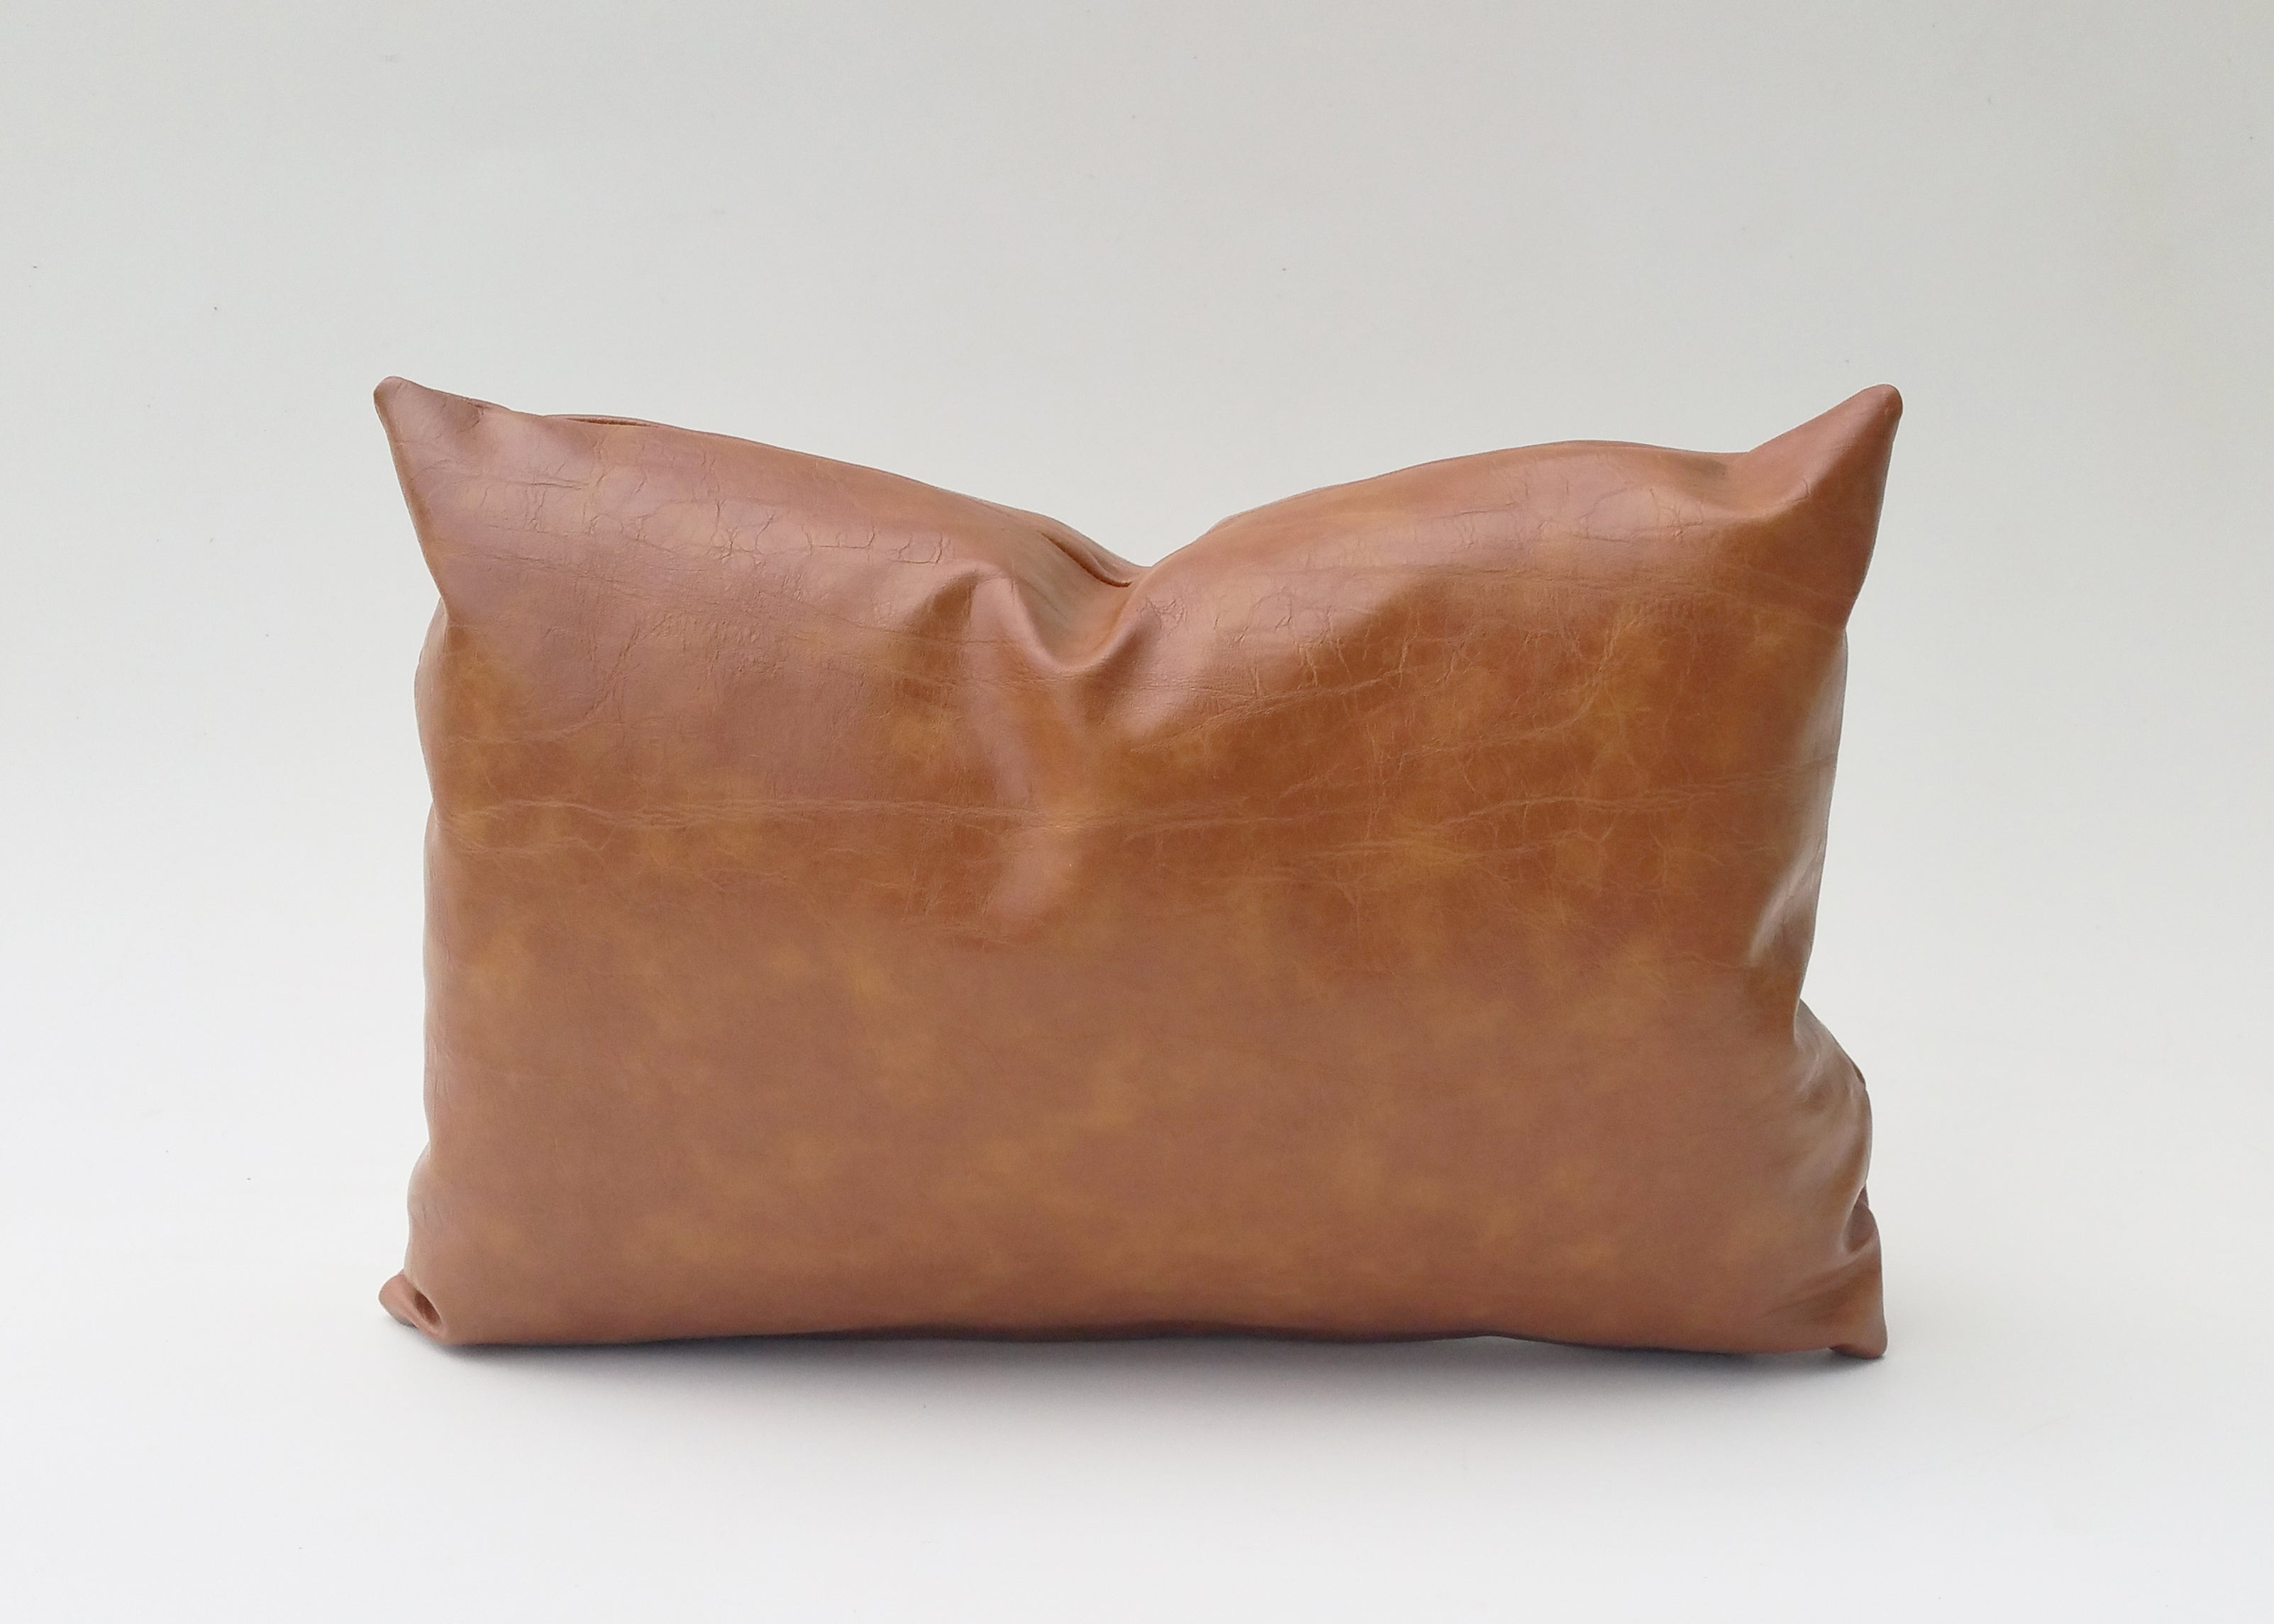 Elizabeth Andersen's classic pillow cover, caramel faux leather adds great texture and a warmth to any space where it's placed. It perfectly transcends all styles and works from living areas to bedrooms to accent chairs or as large floor pillows. This classic throw pillow is available in virtually any size, including custom sizing.